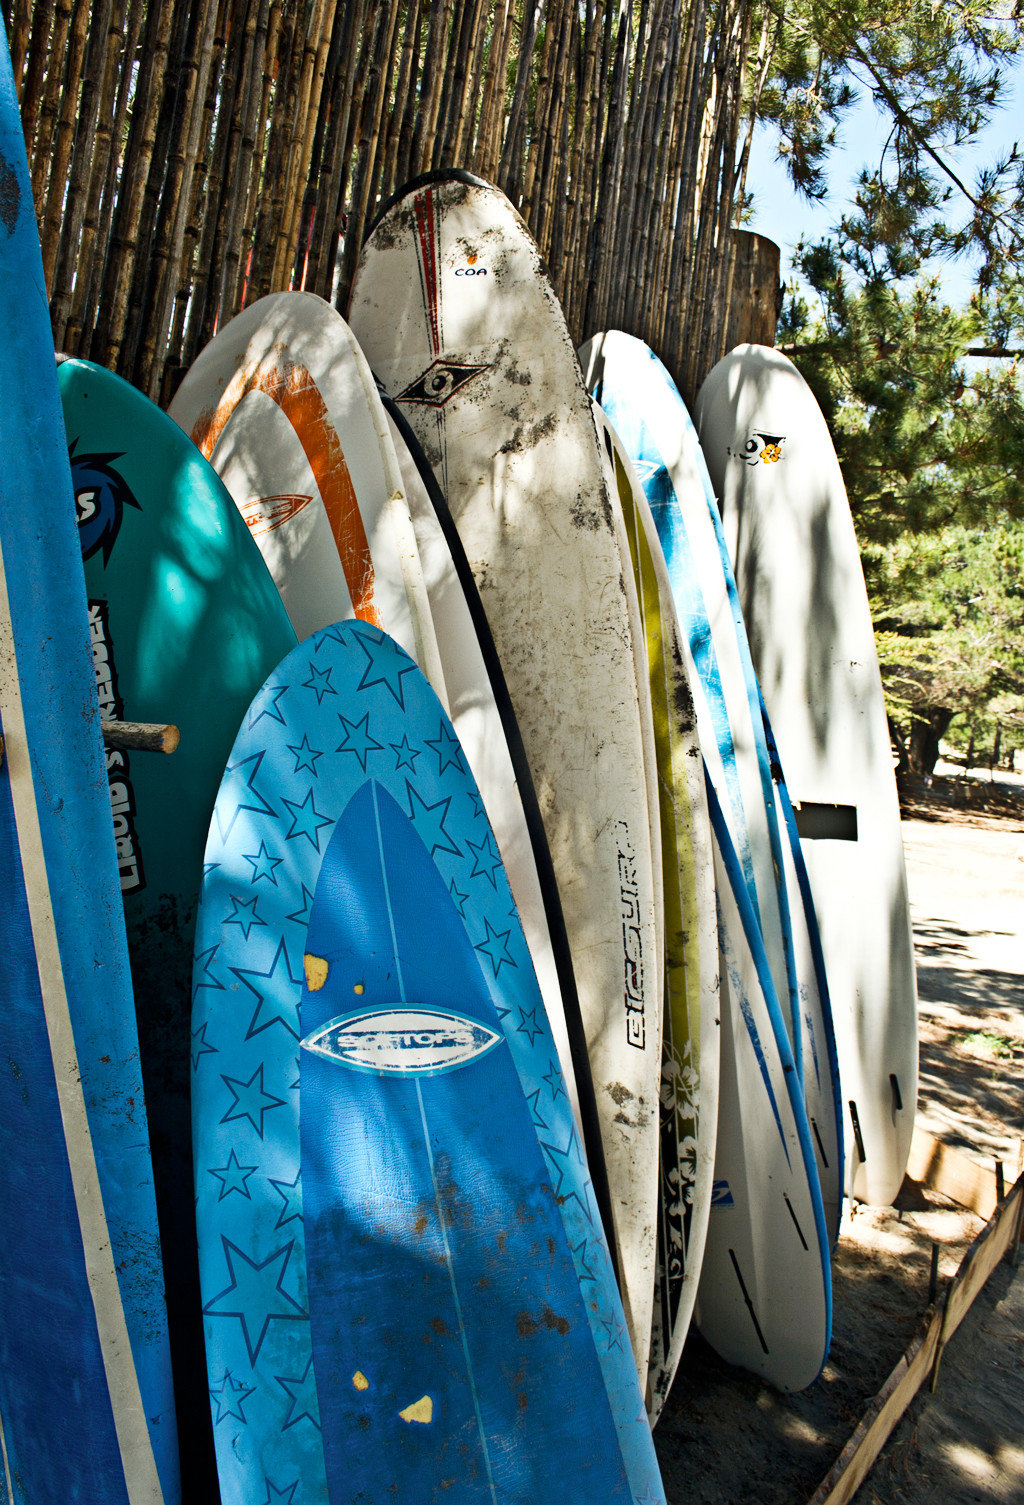 Outdoor Activities Outdoors Play Sport Wellness color surfing blue boarding surfboard surfing equipment and supplies spring group row lined sports equipment vehicle rack bunch shoes plant line clothes